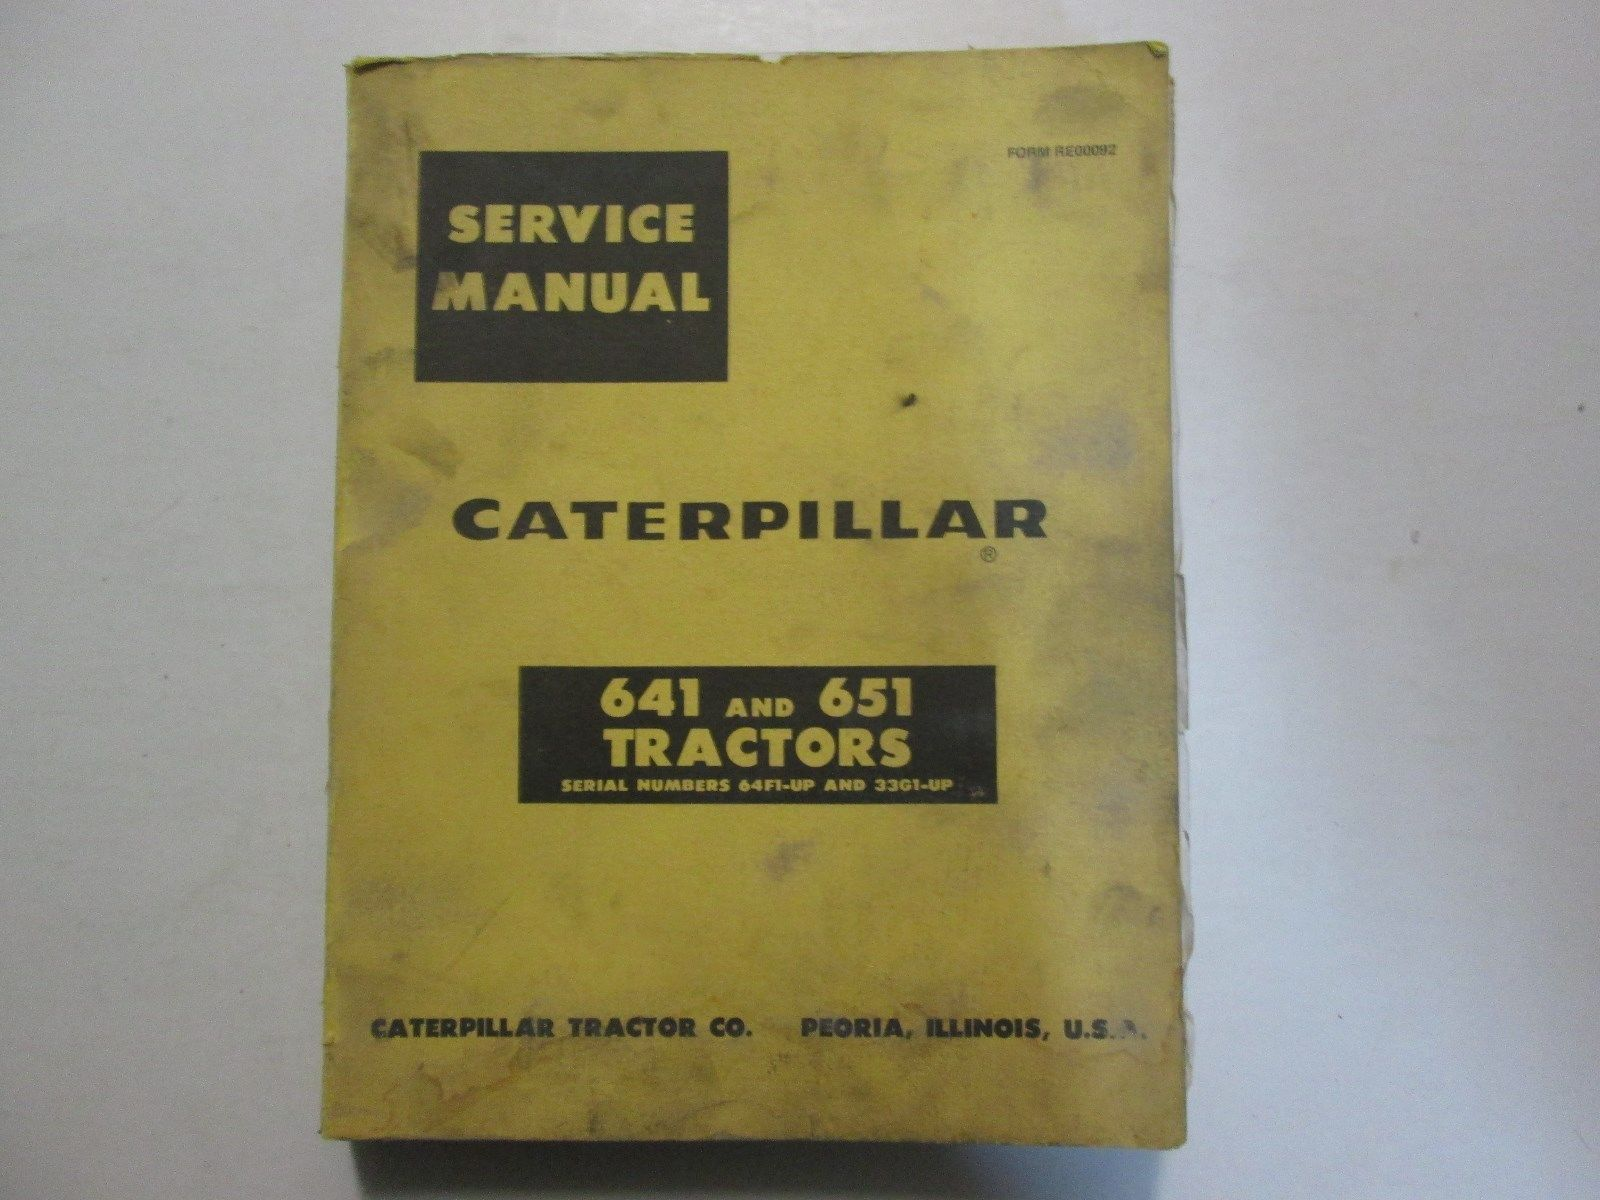 Caterpillar 641 And 651 Tractor Service Manual 64F1-UP 33G1-UP WATER DAMAGED OEM